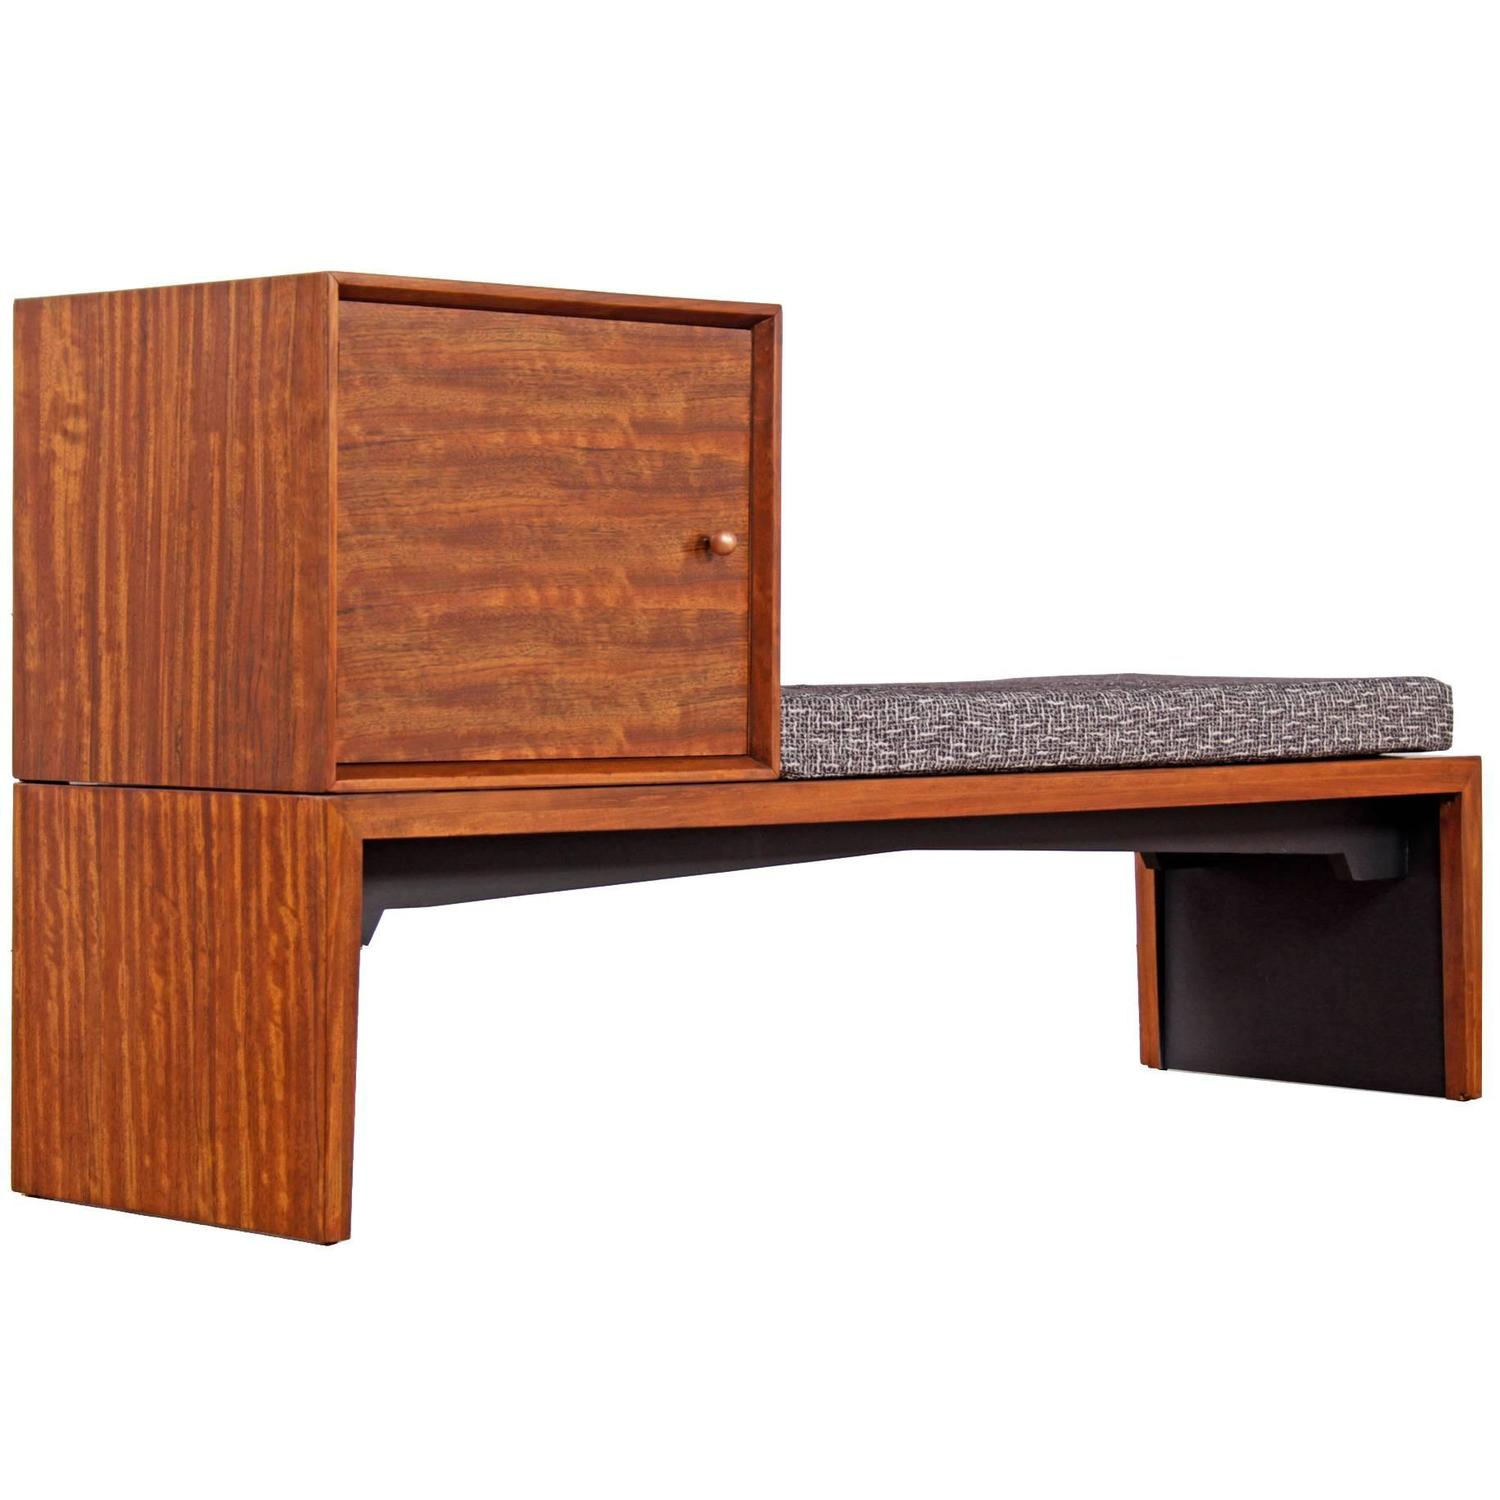 Milo Baughman For Drexel Modular Bench With Storage At 1stdibs